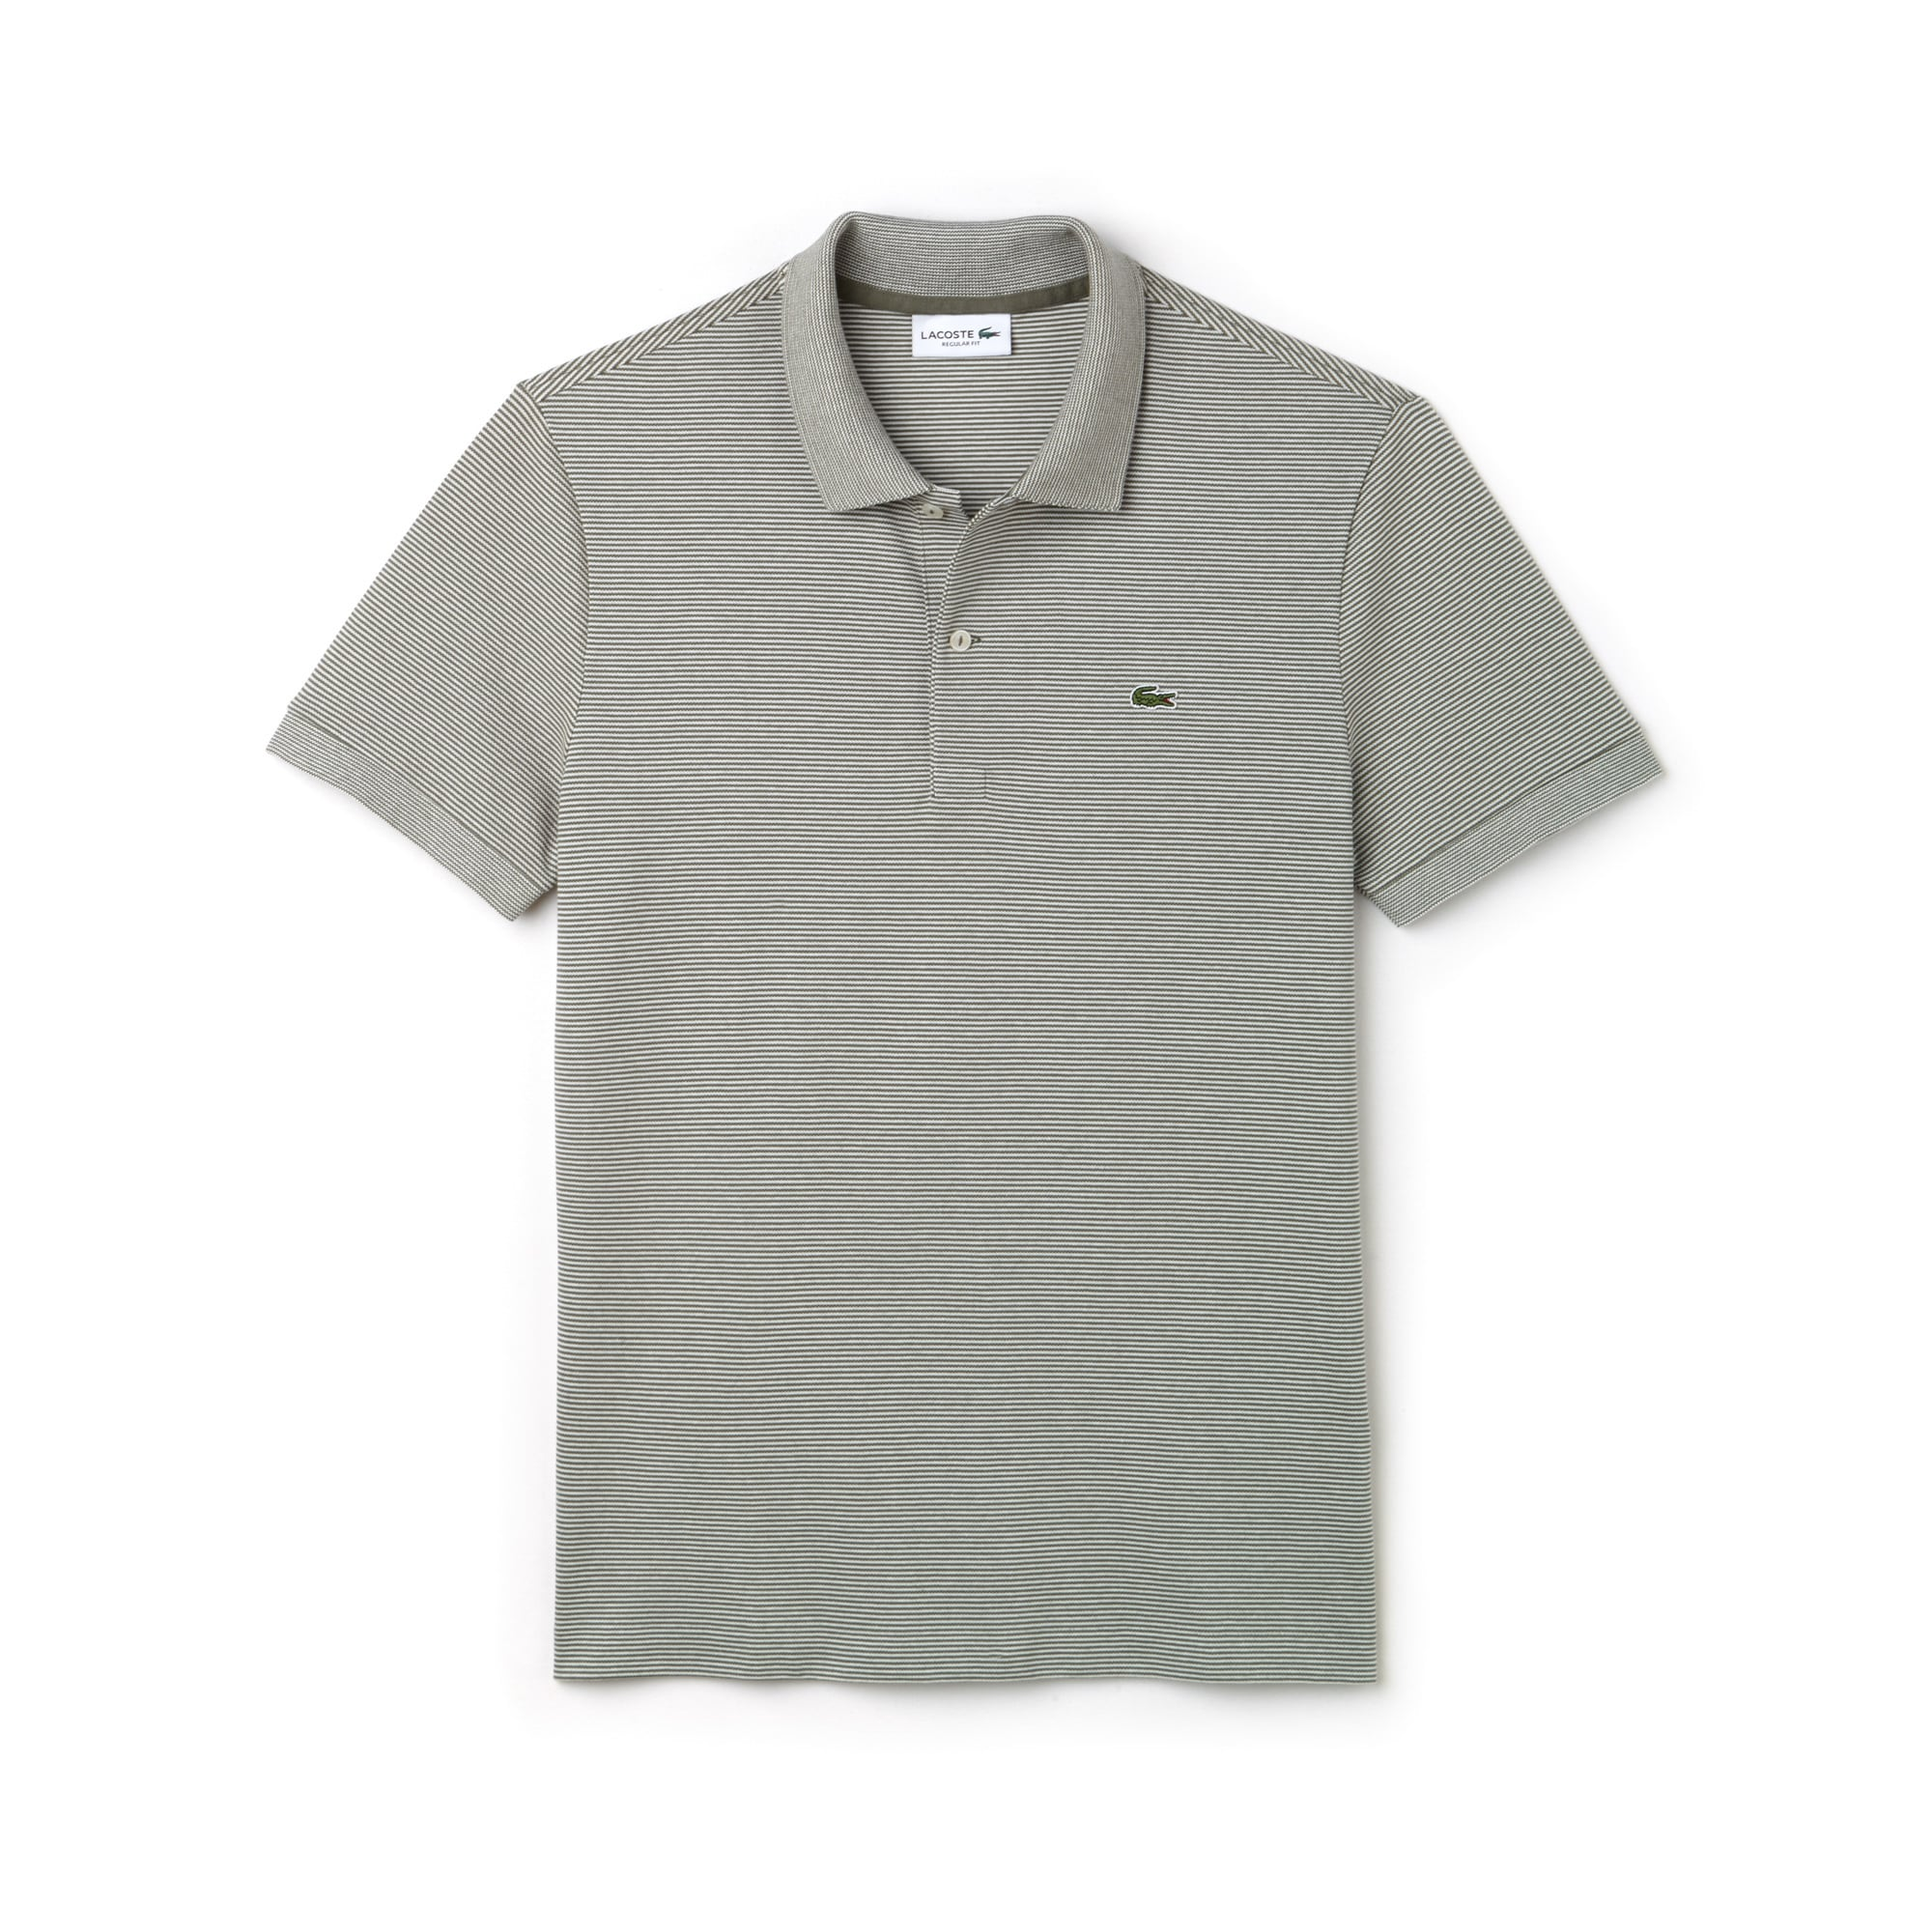 Mens Clothing On Sale Lacoste